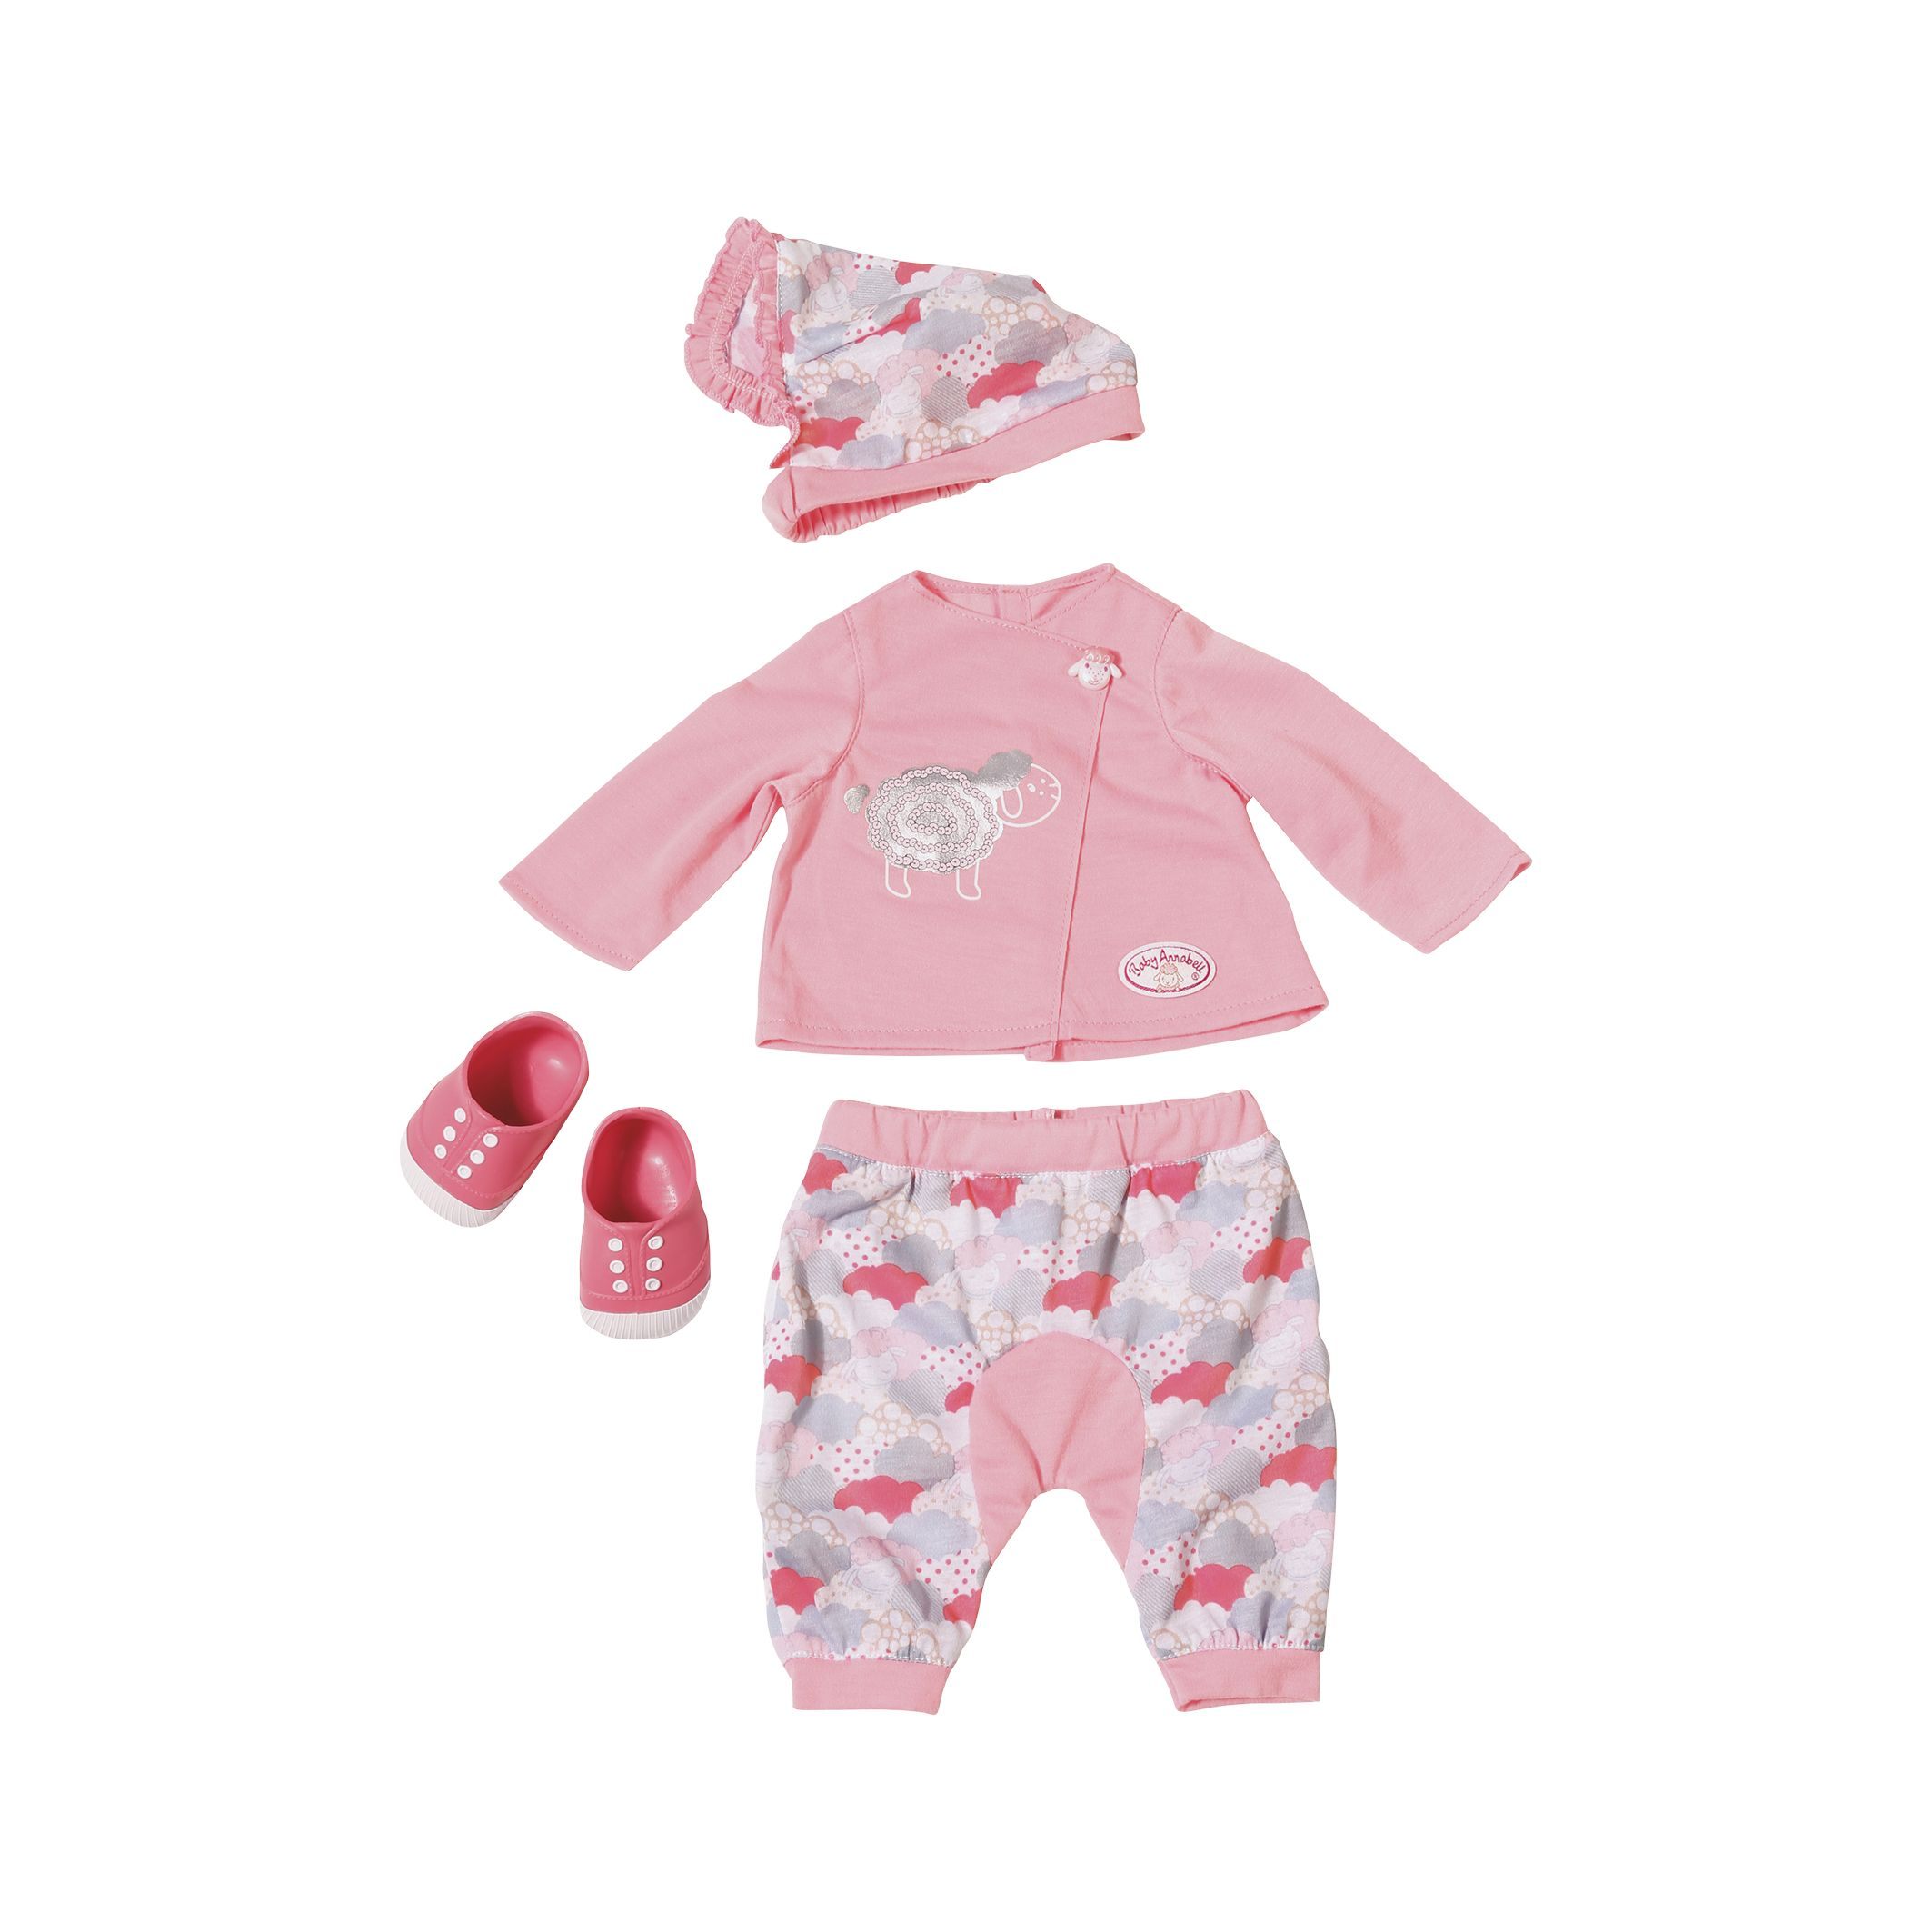 ce7618cbcad2f Zapf Baby Annabell Deluxe Sheep Clothing Set at John Lewis & Partners